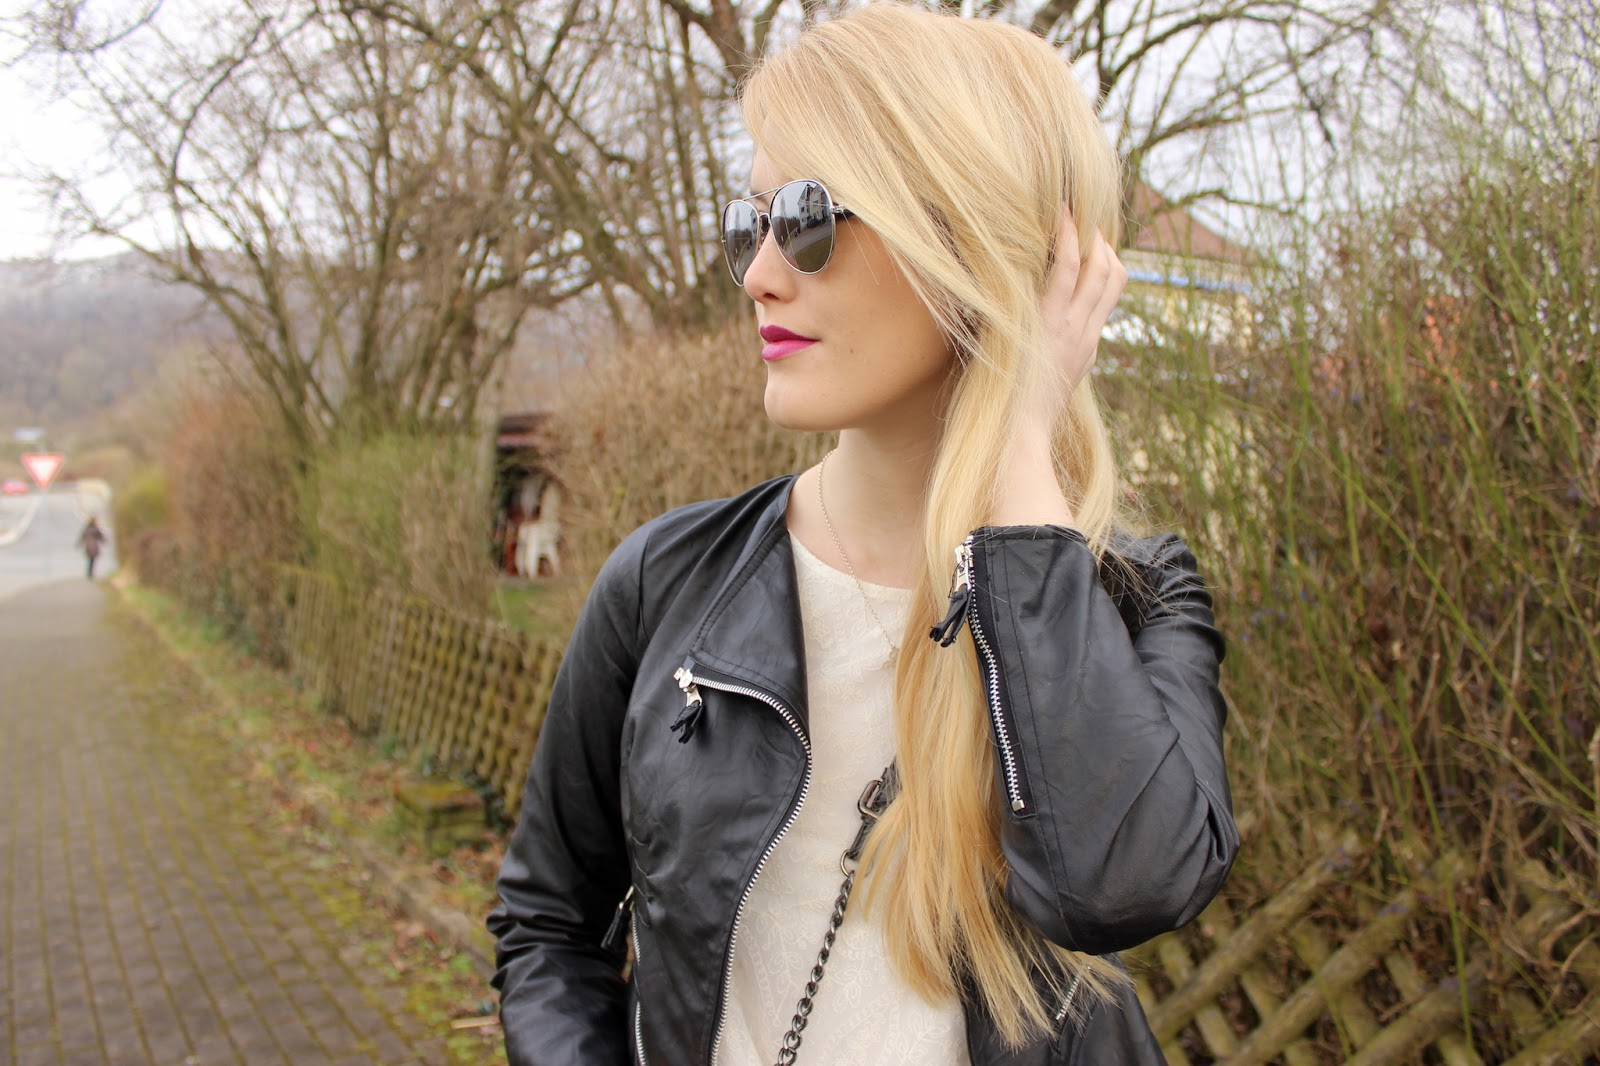 Look TheBlondeLion Biker Chic aviator sunglasses mirrored